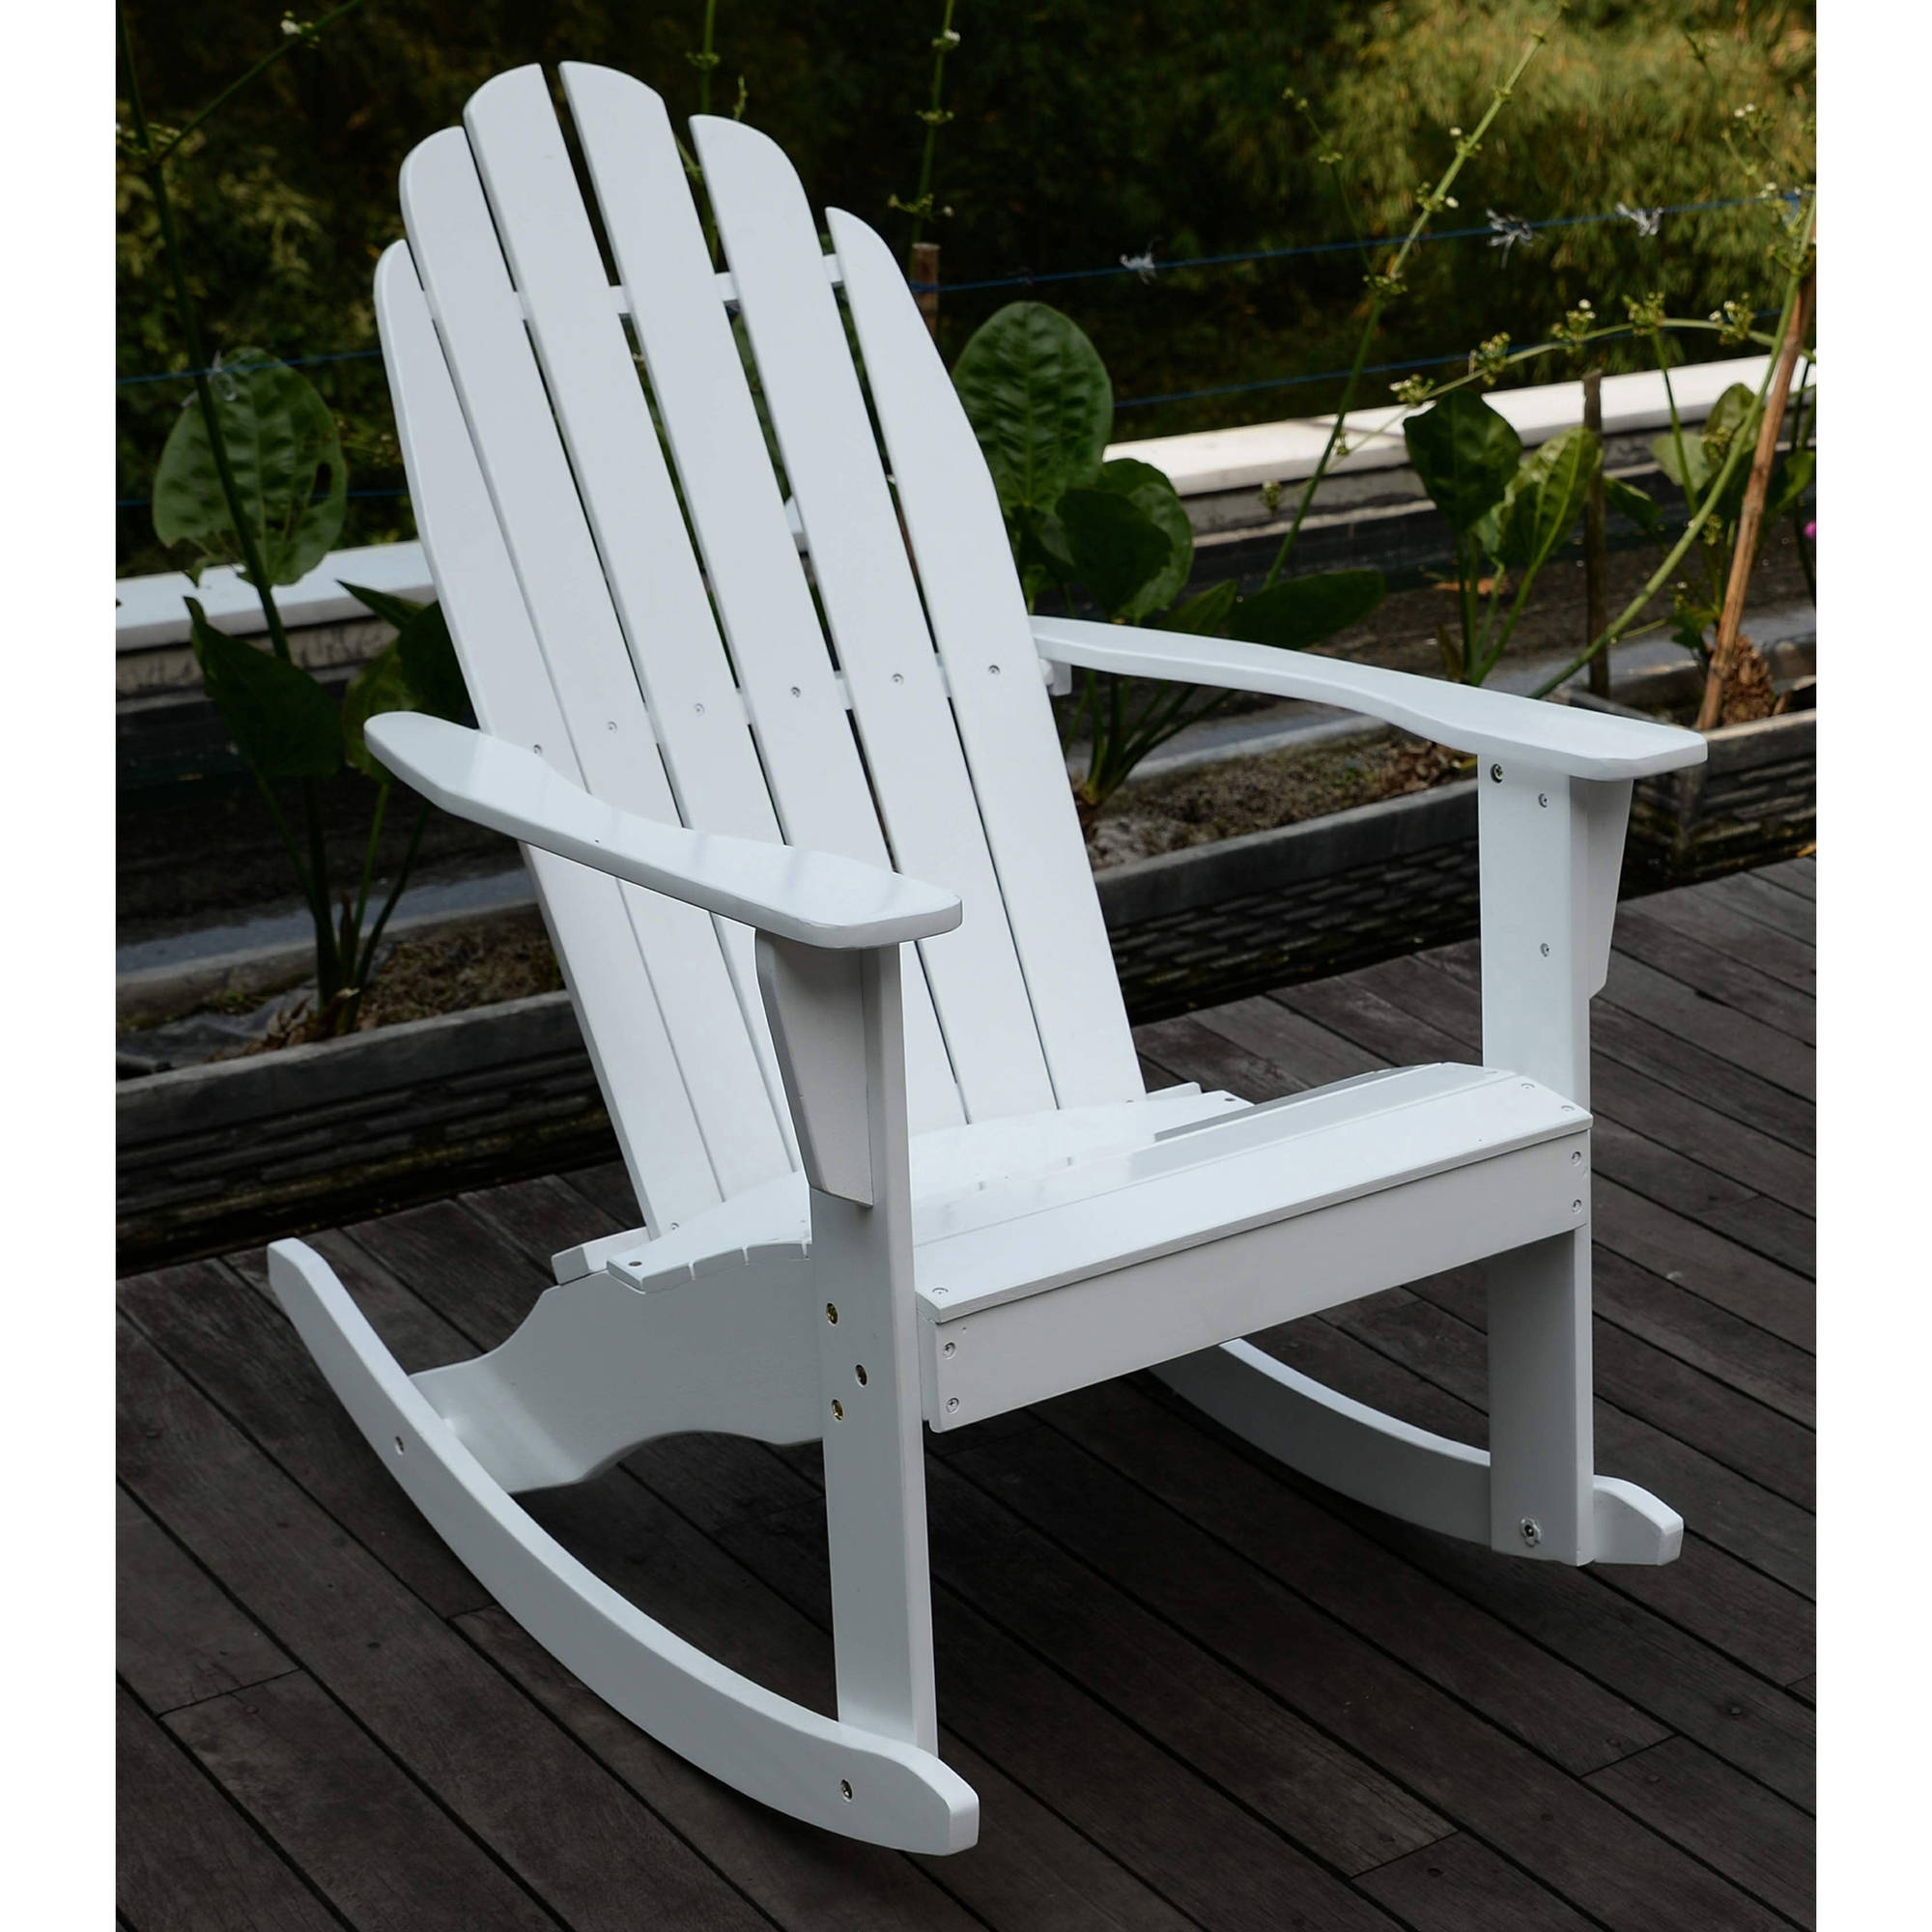 Chair | Outdoor Furniture Rockers Patio Chairs Western Rocking Chair With Regard To Outdoor Vinyl Rocking Chairs (View 2 of 15)